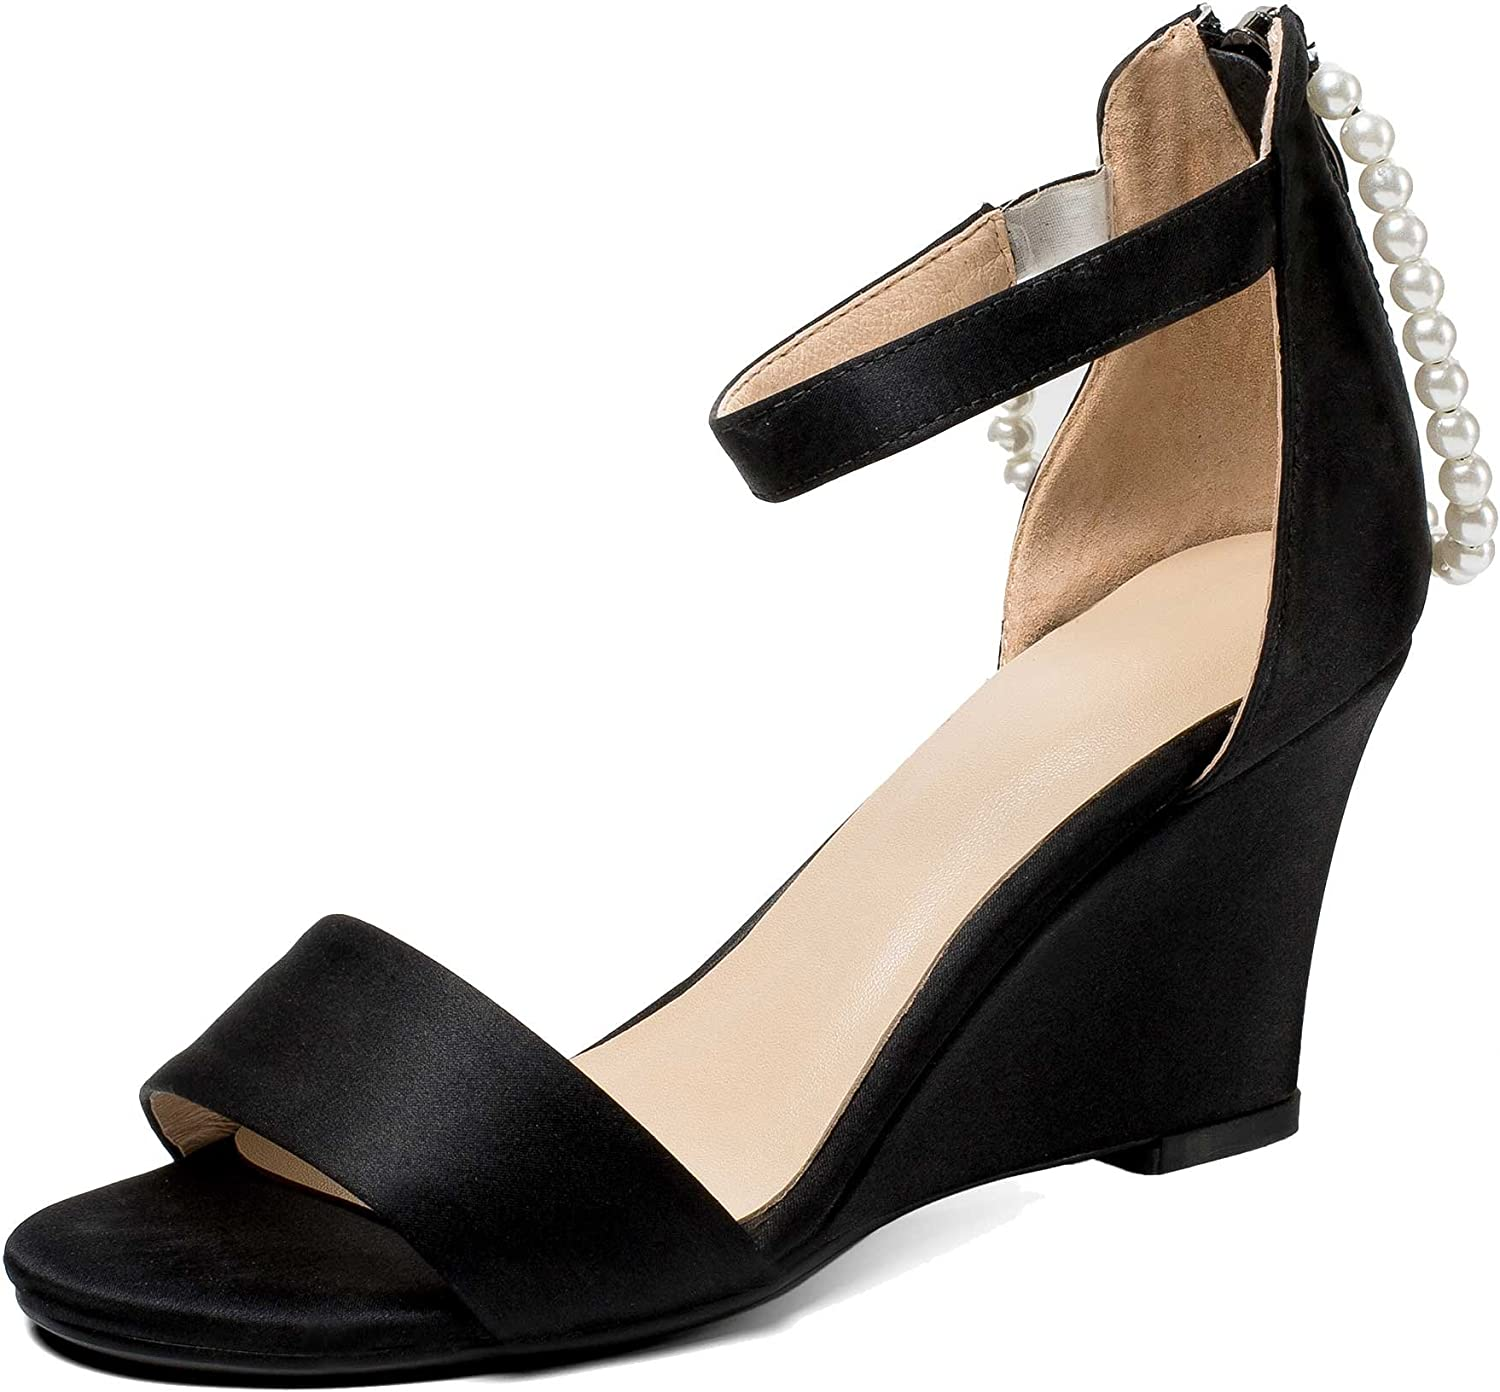 A-BUYBEA Women's 3.3  Wedge-Heeled Leather Sandal shoes with Fake-Pearls Black Green Size 4.5-7.5